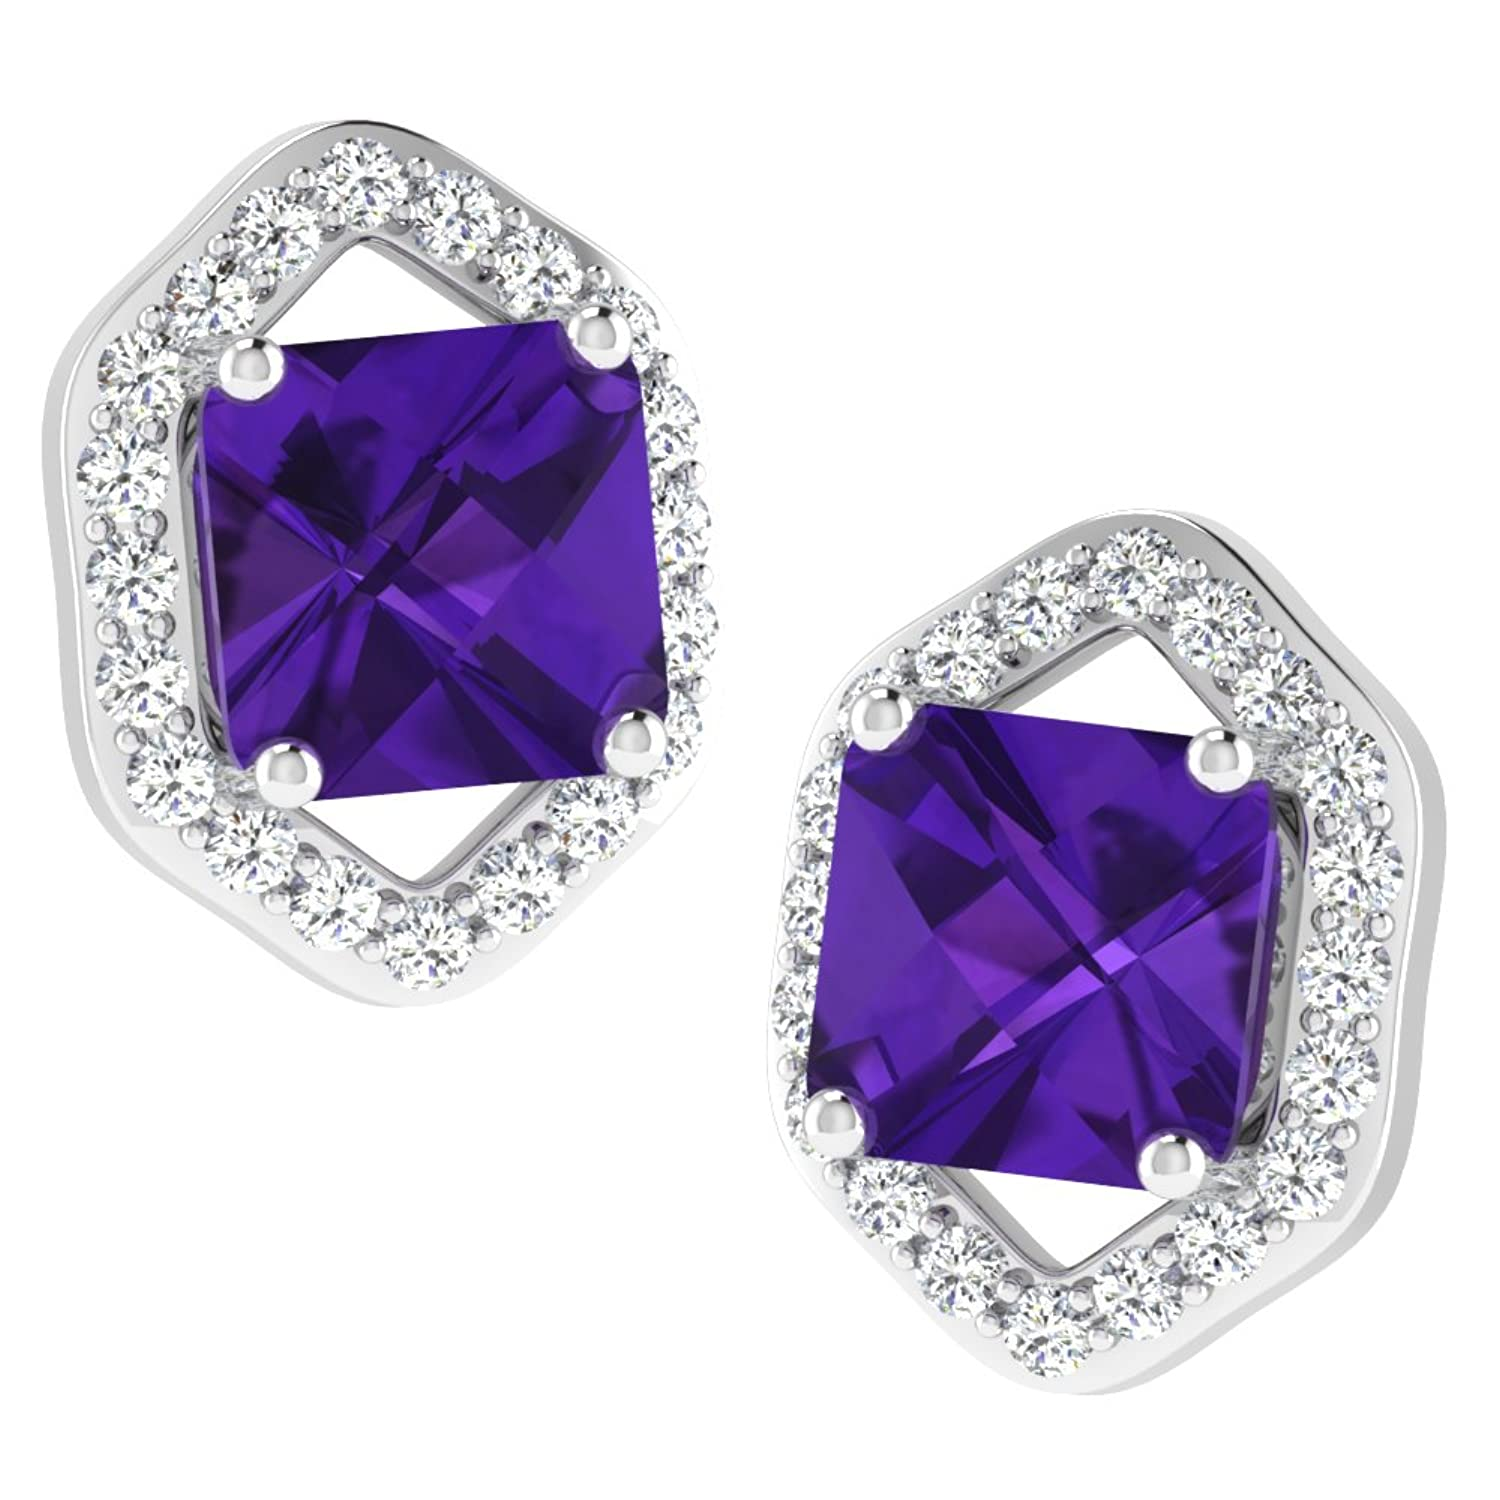 30% - 60% Off On Daimond Jewelry Collection By Amazon | His & Her Diamonds .925 Sterling Silver and Diamond Stud Earrings @ Rs.3,053